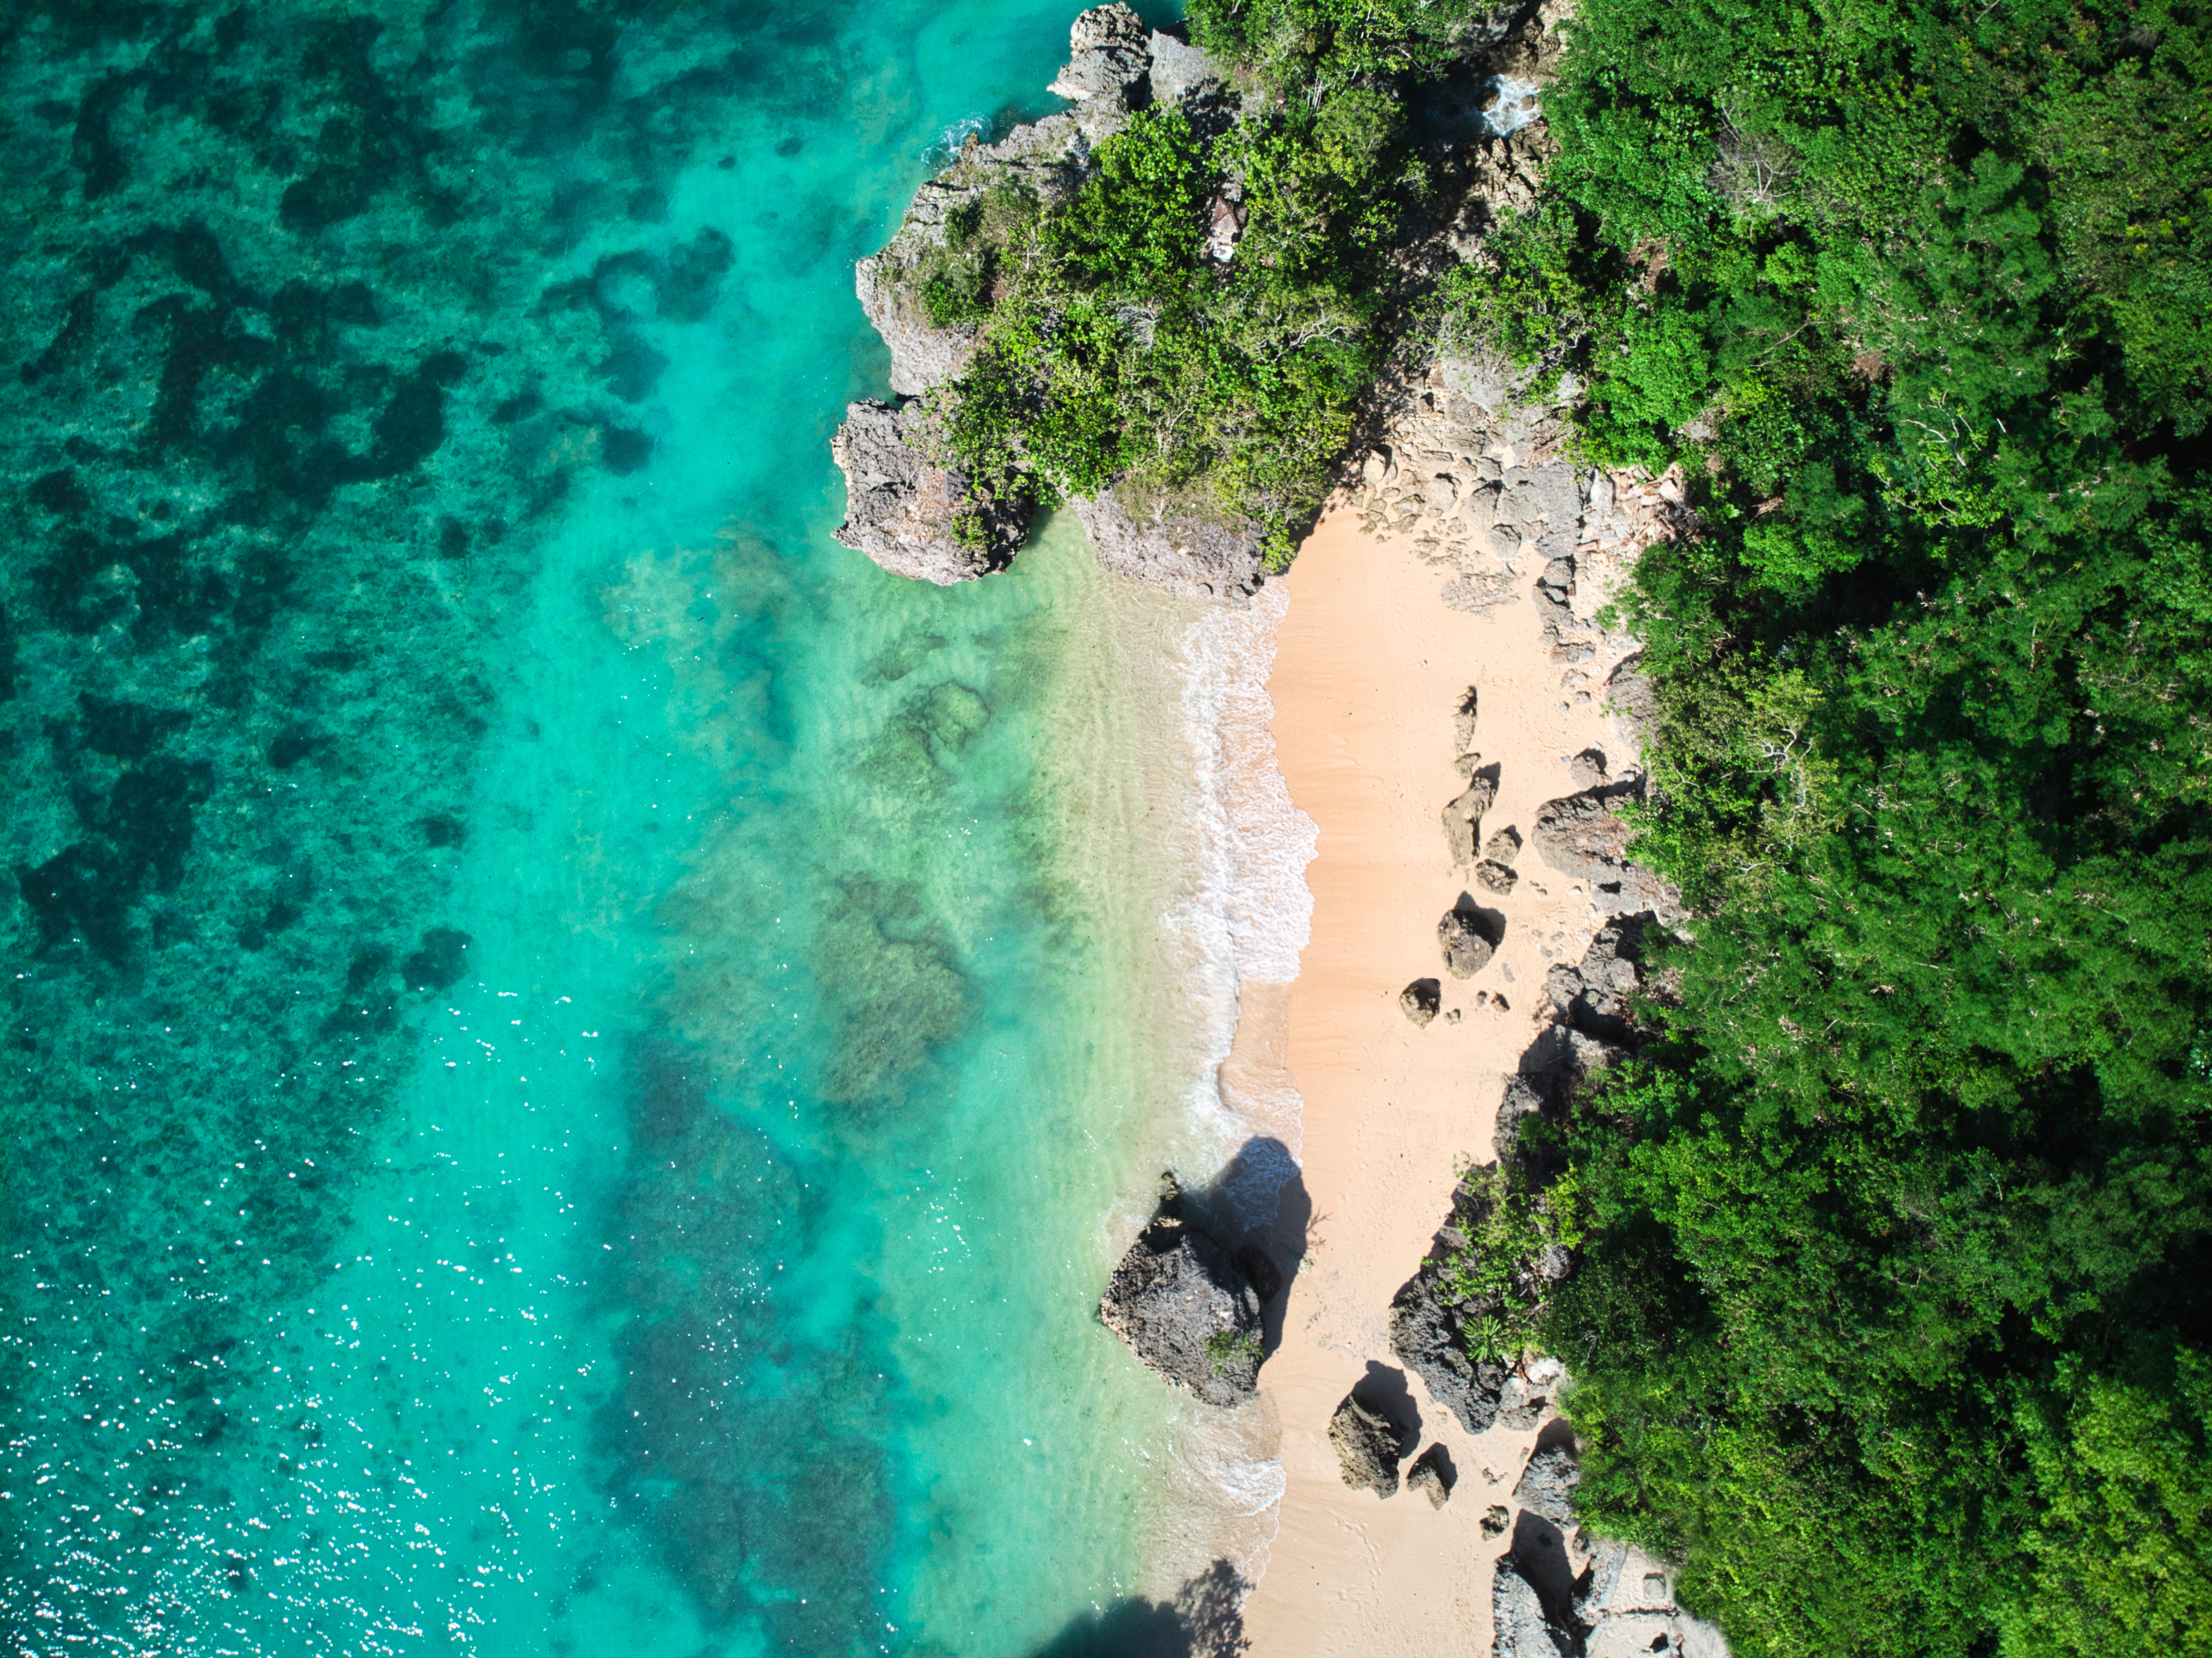 Looking down on a sandy beach with some large rocks in between a green forest and turquoise water.